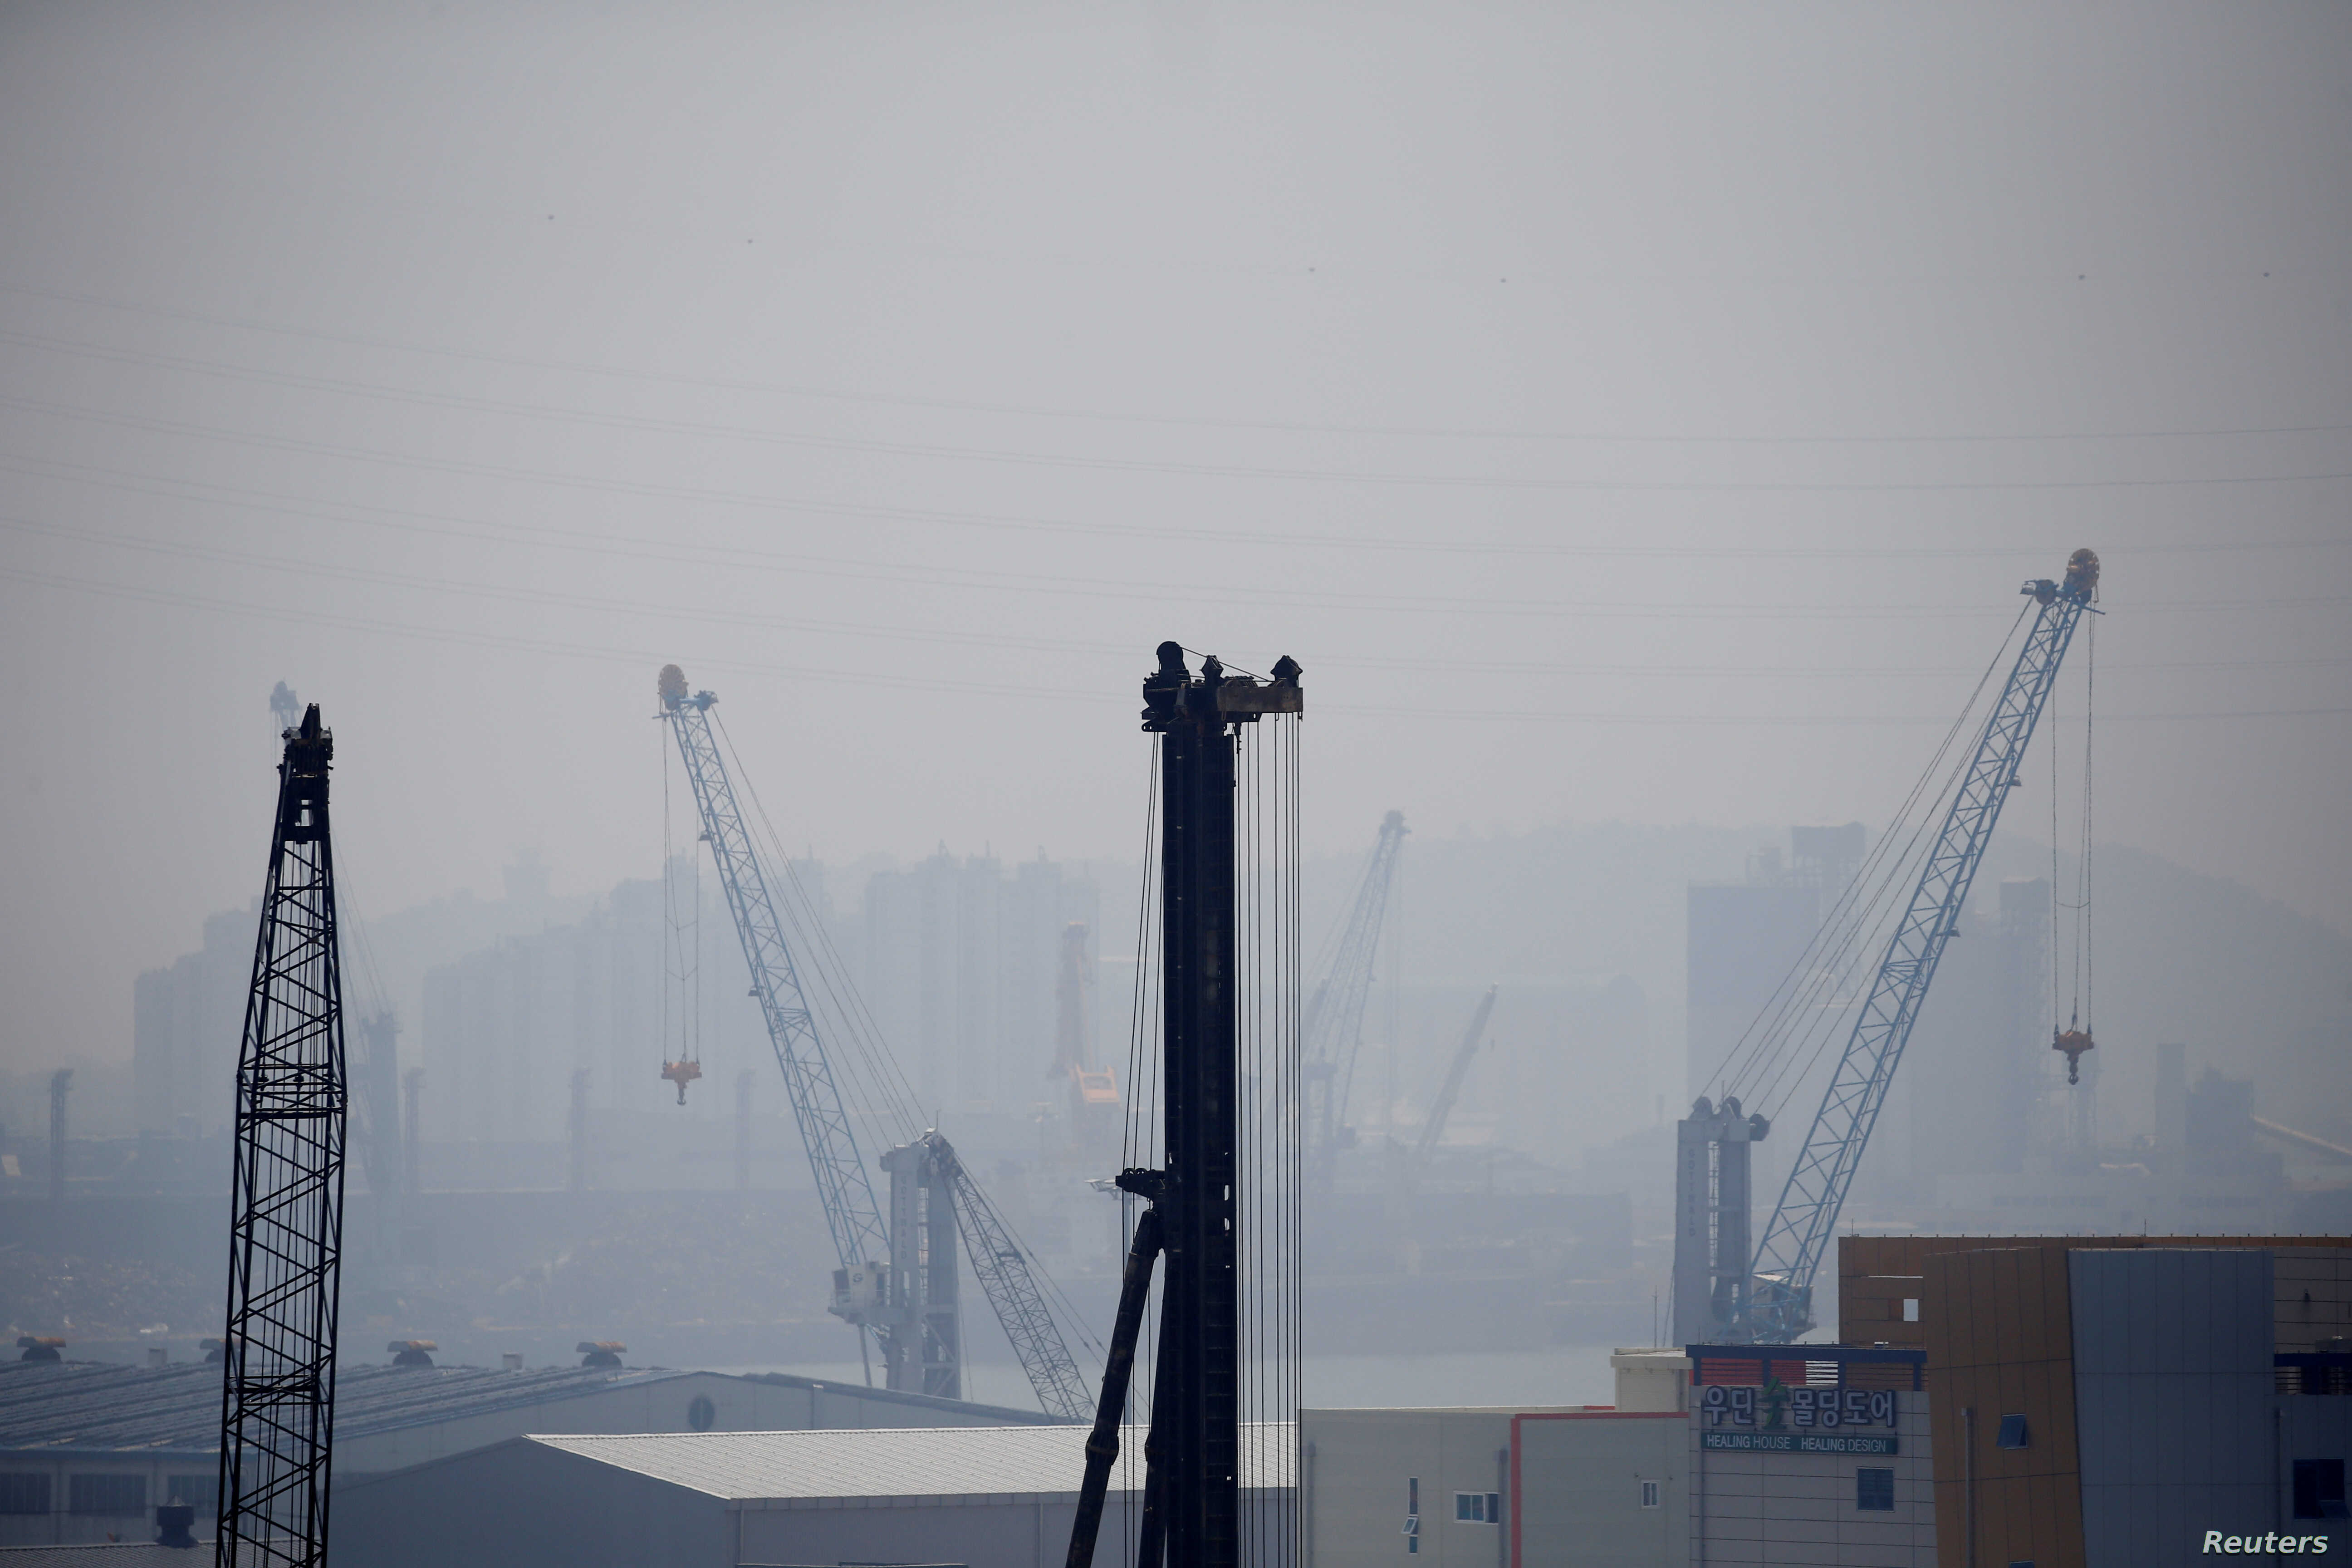 South Korea's Difficult Road Ahead to Combat Fine Dust